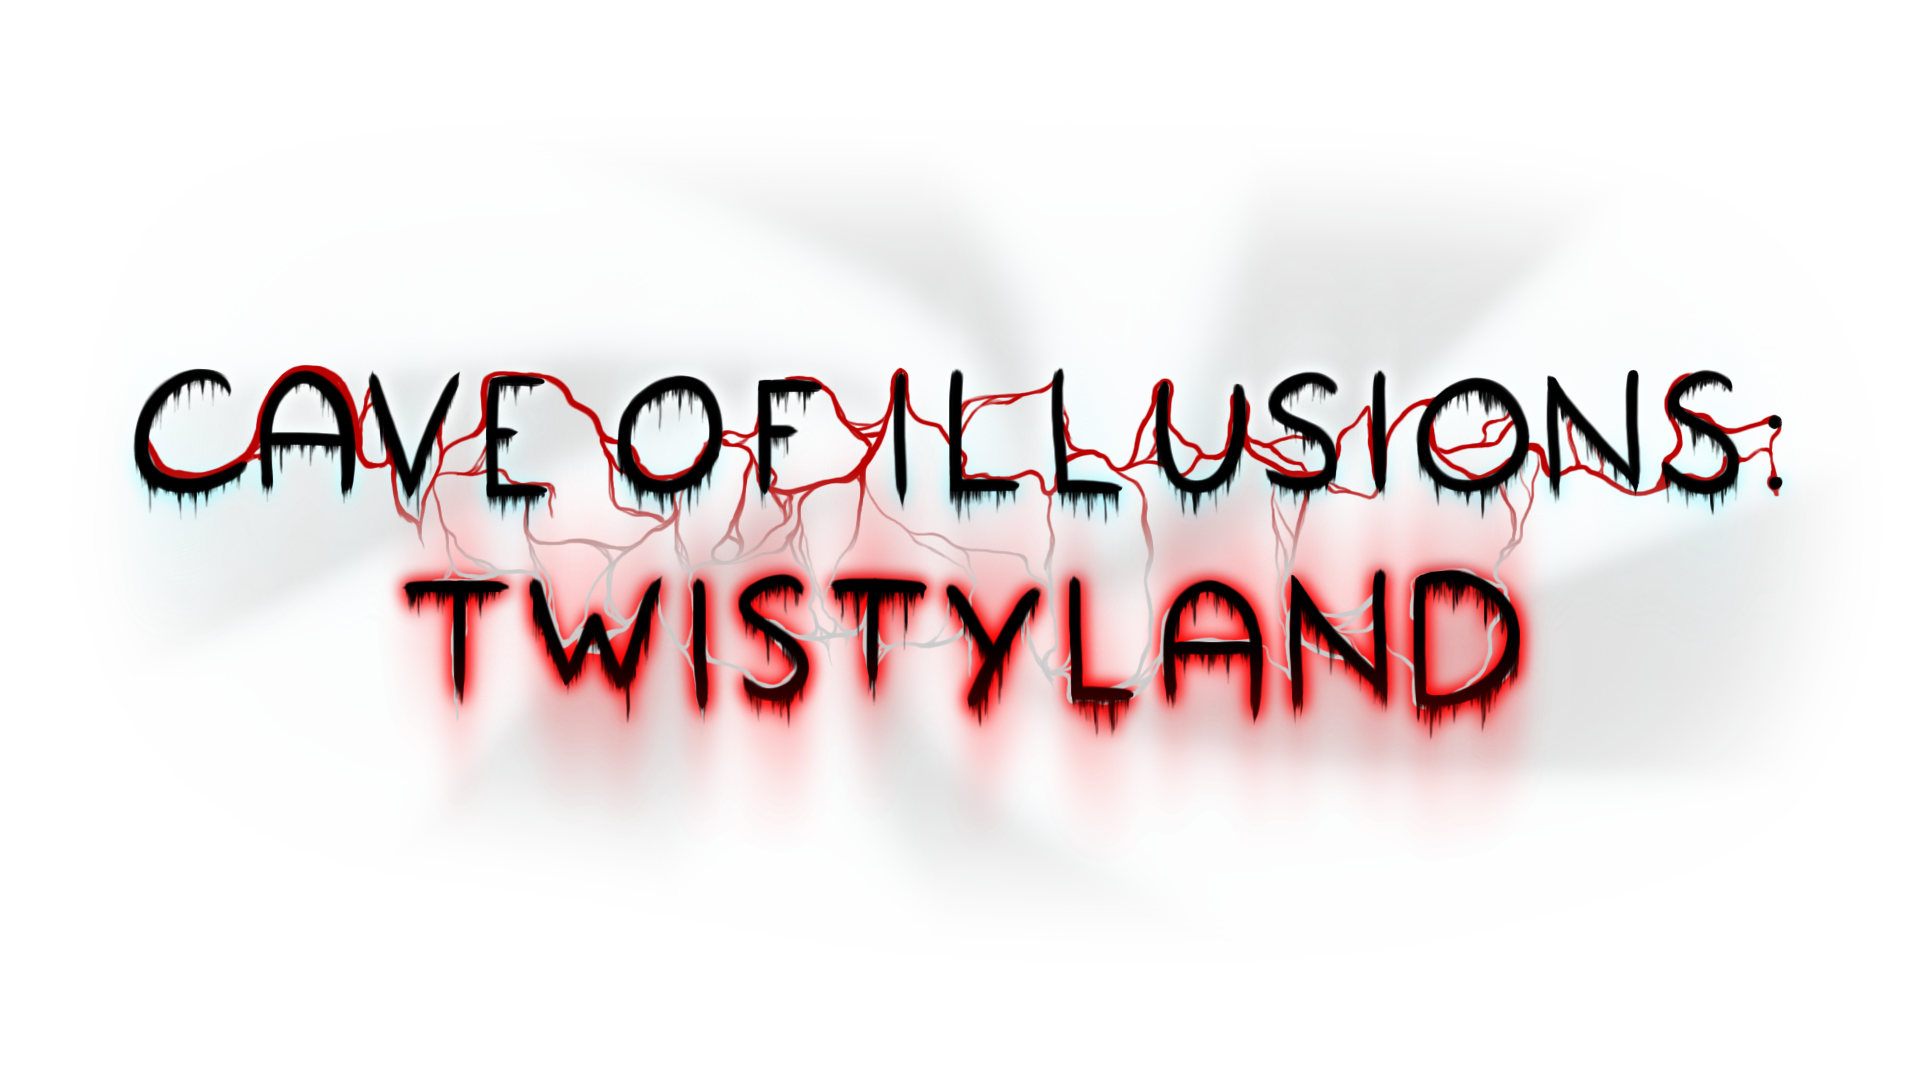 Cave of Illusions: Twistyland